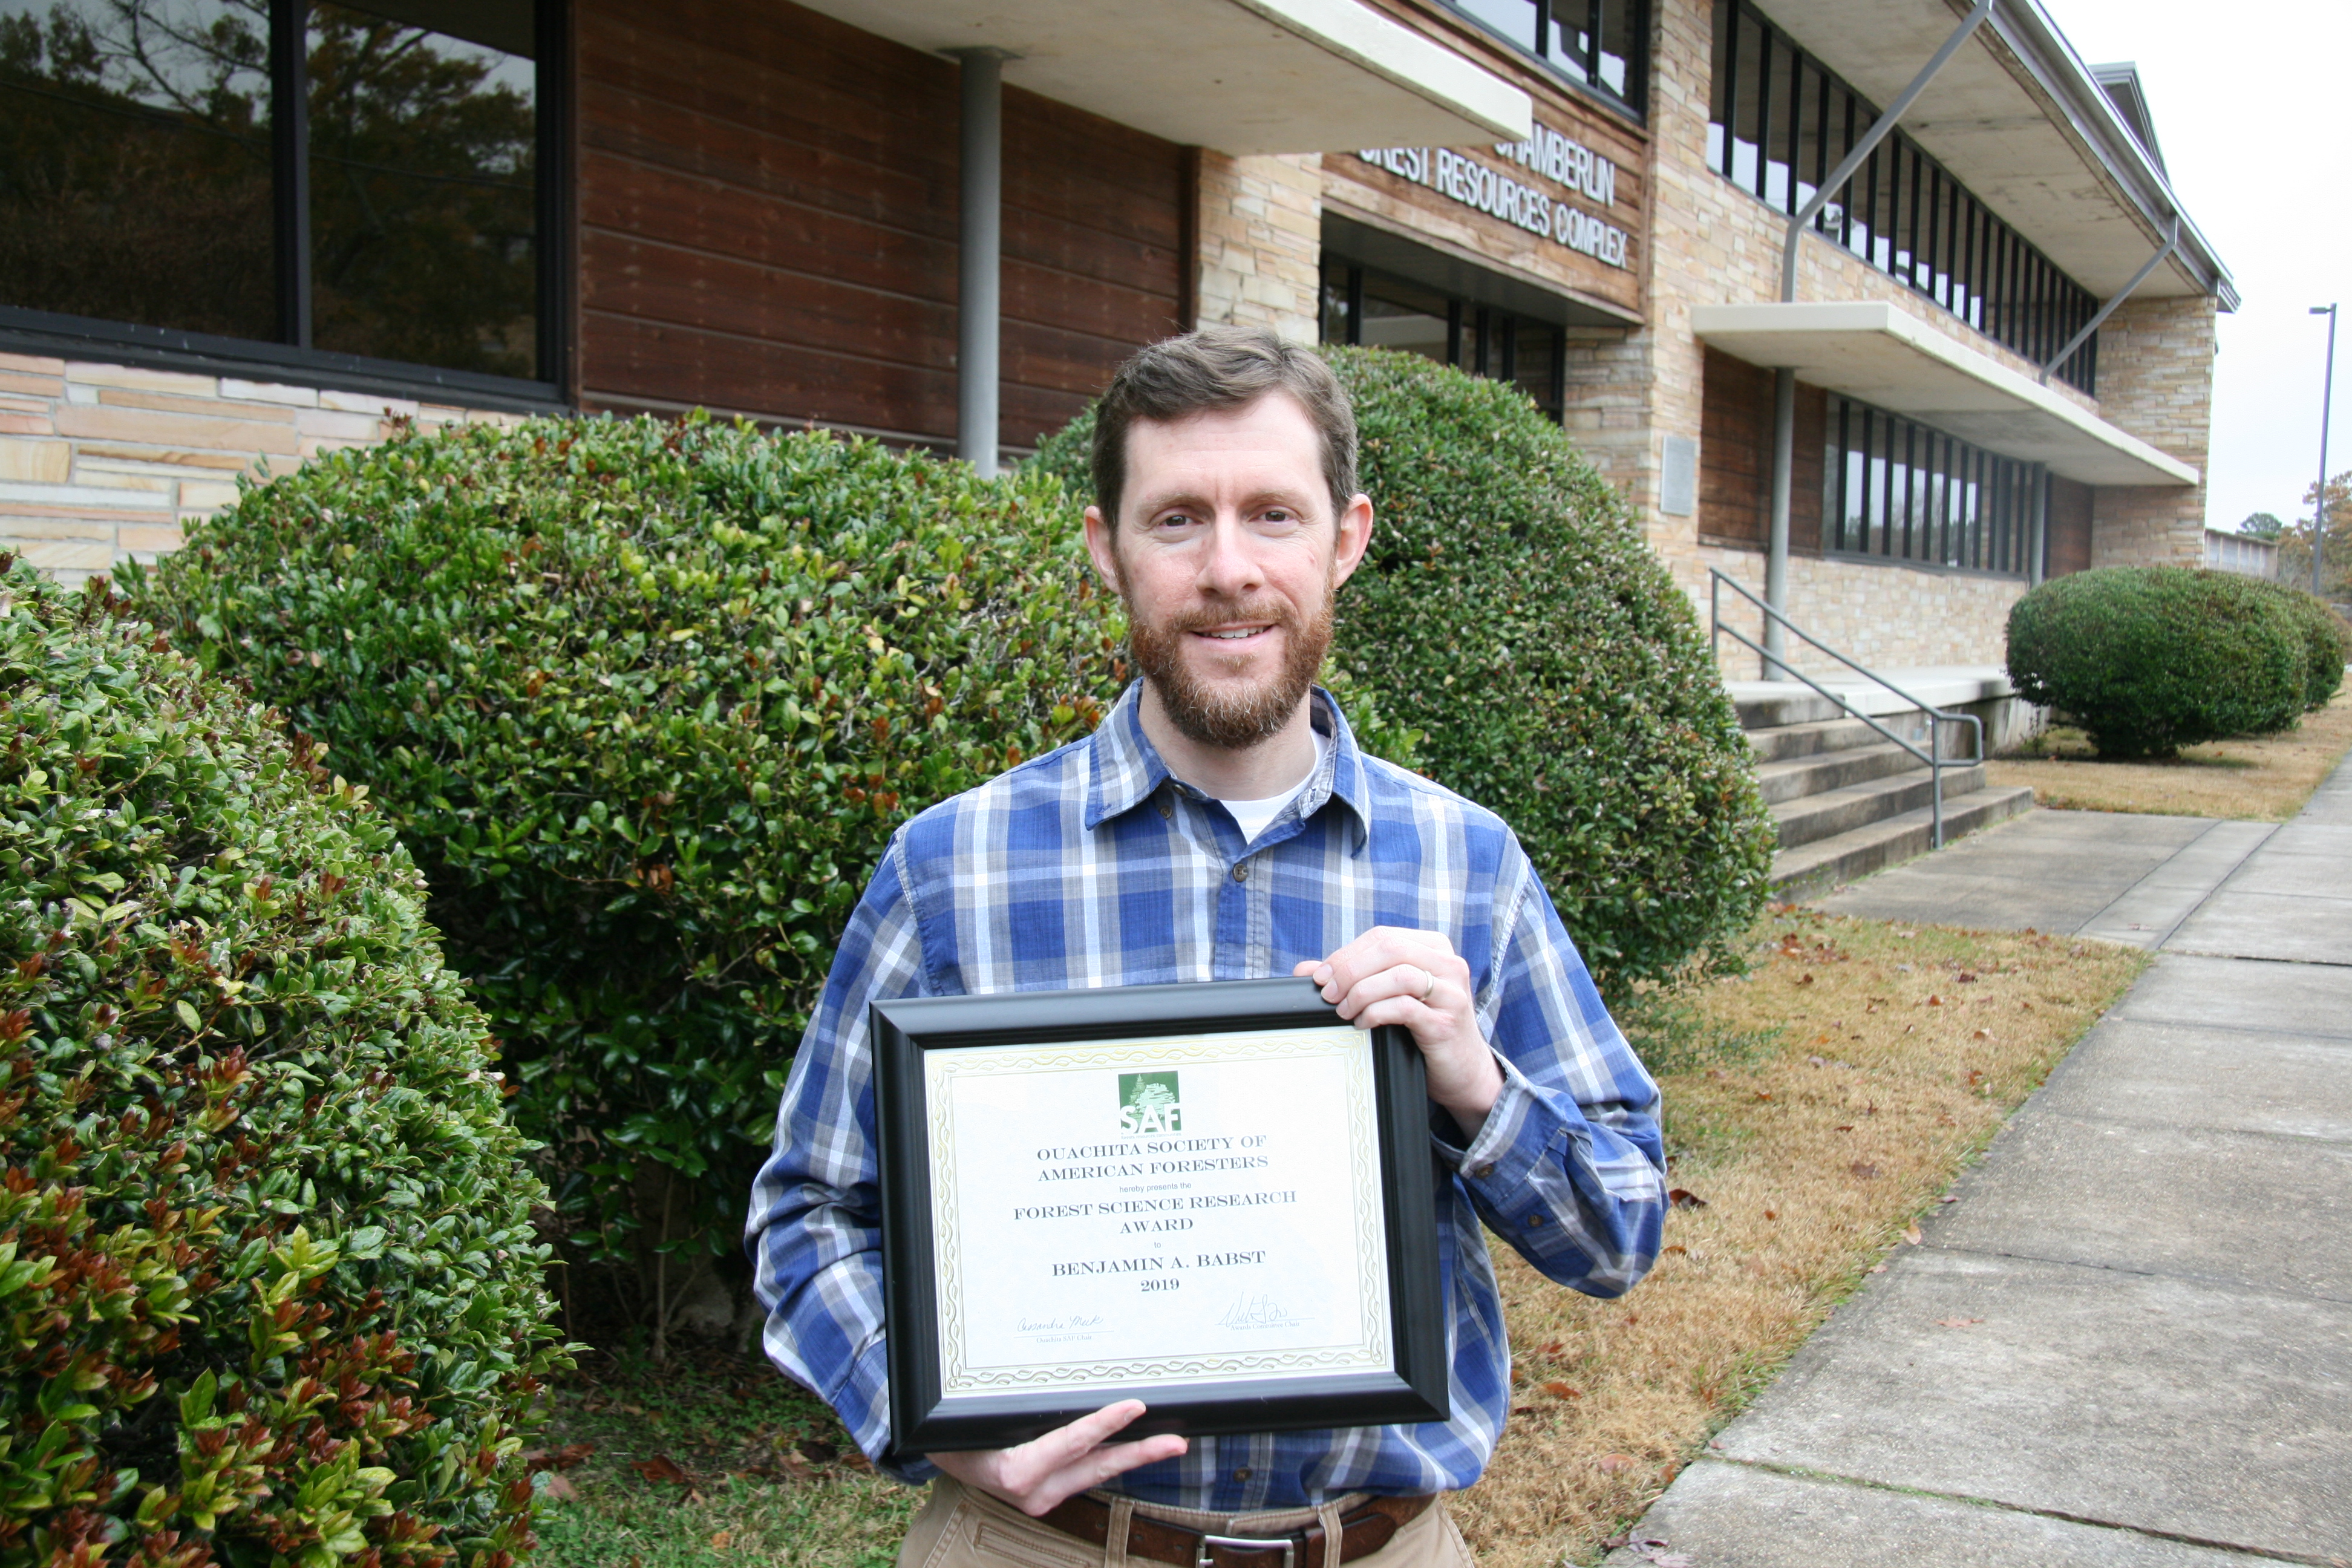 Benjamin Babst Forestry Research Award